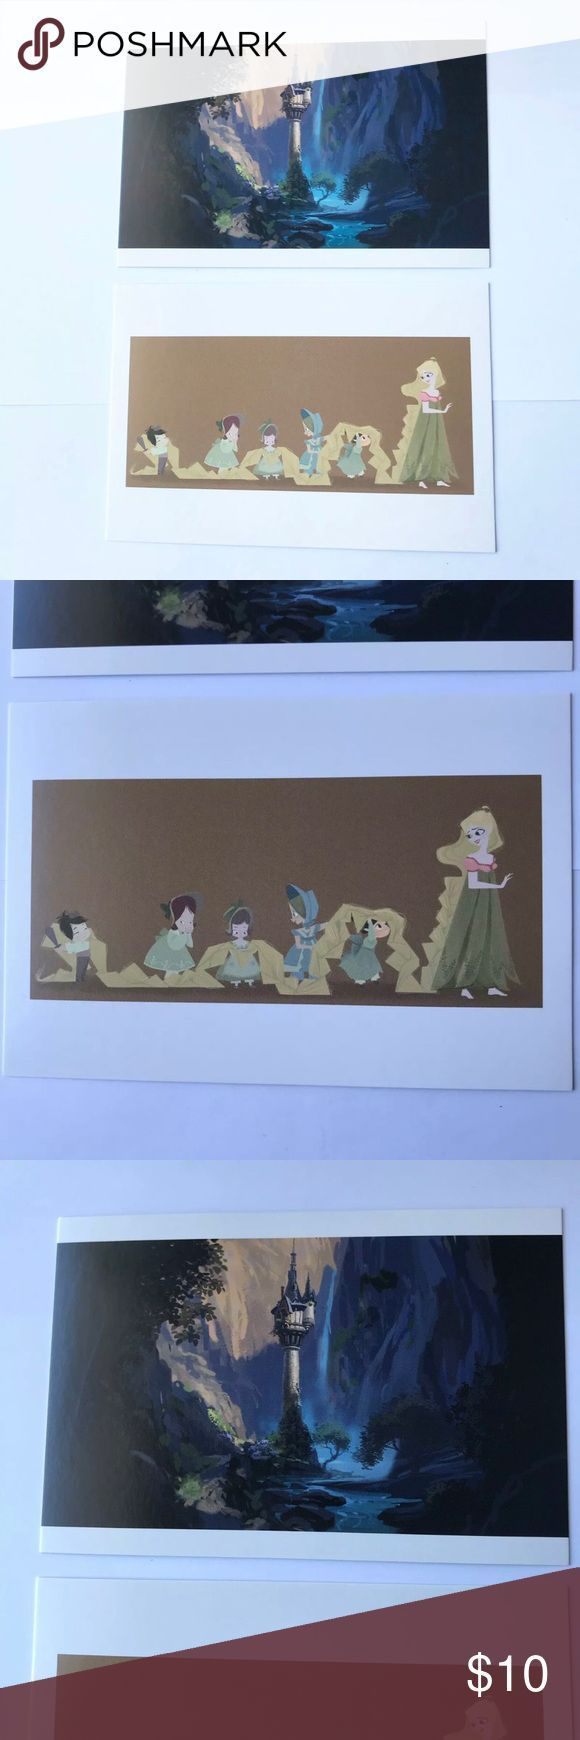 Disney Tangled Concept Art Collectible Postcards I